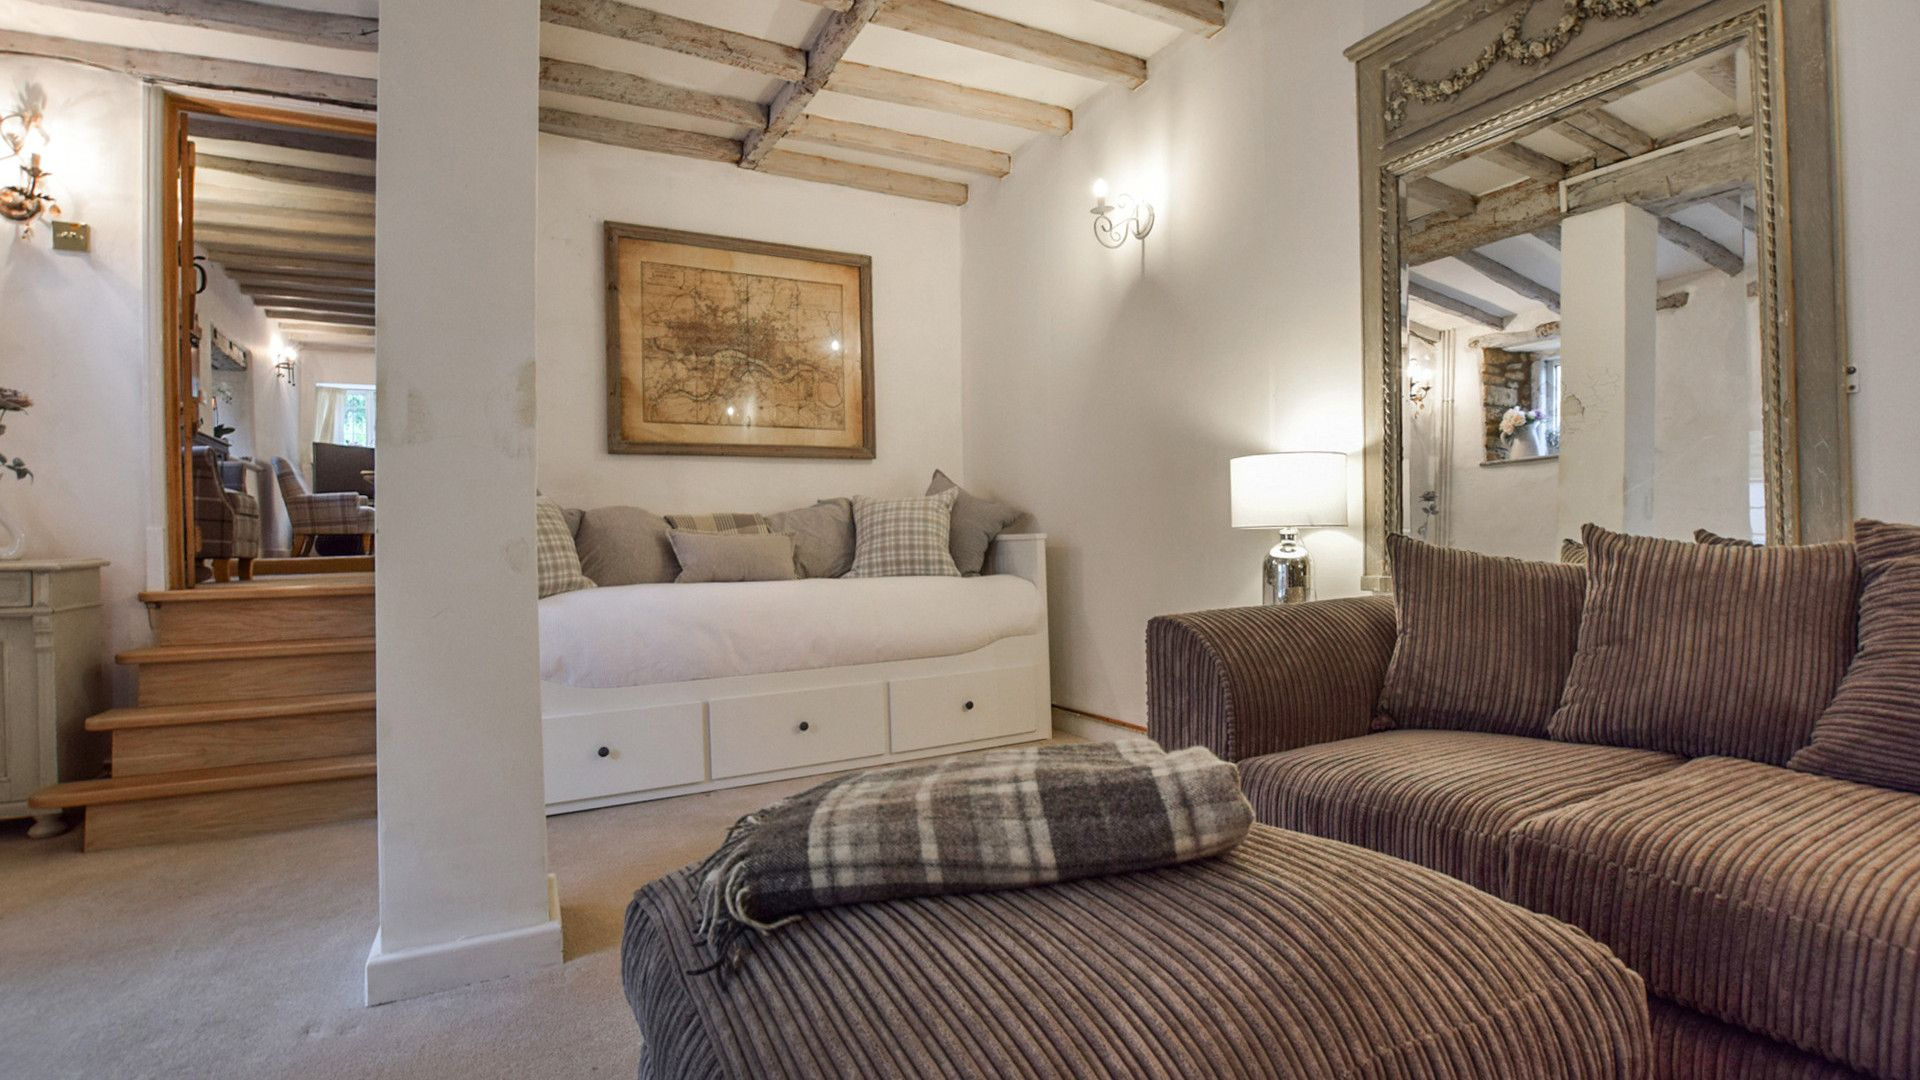 Snug with day bed, Suncroft, Bolthole Retreats